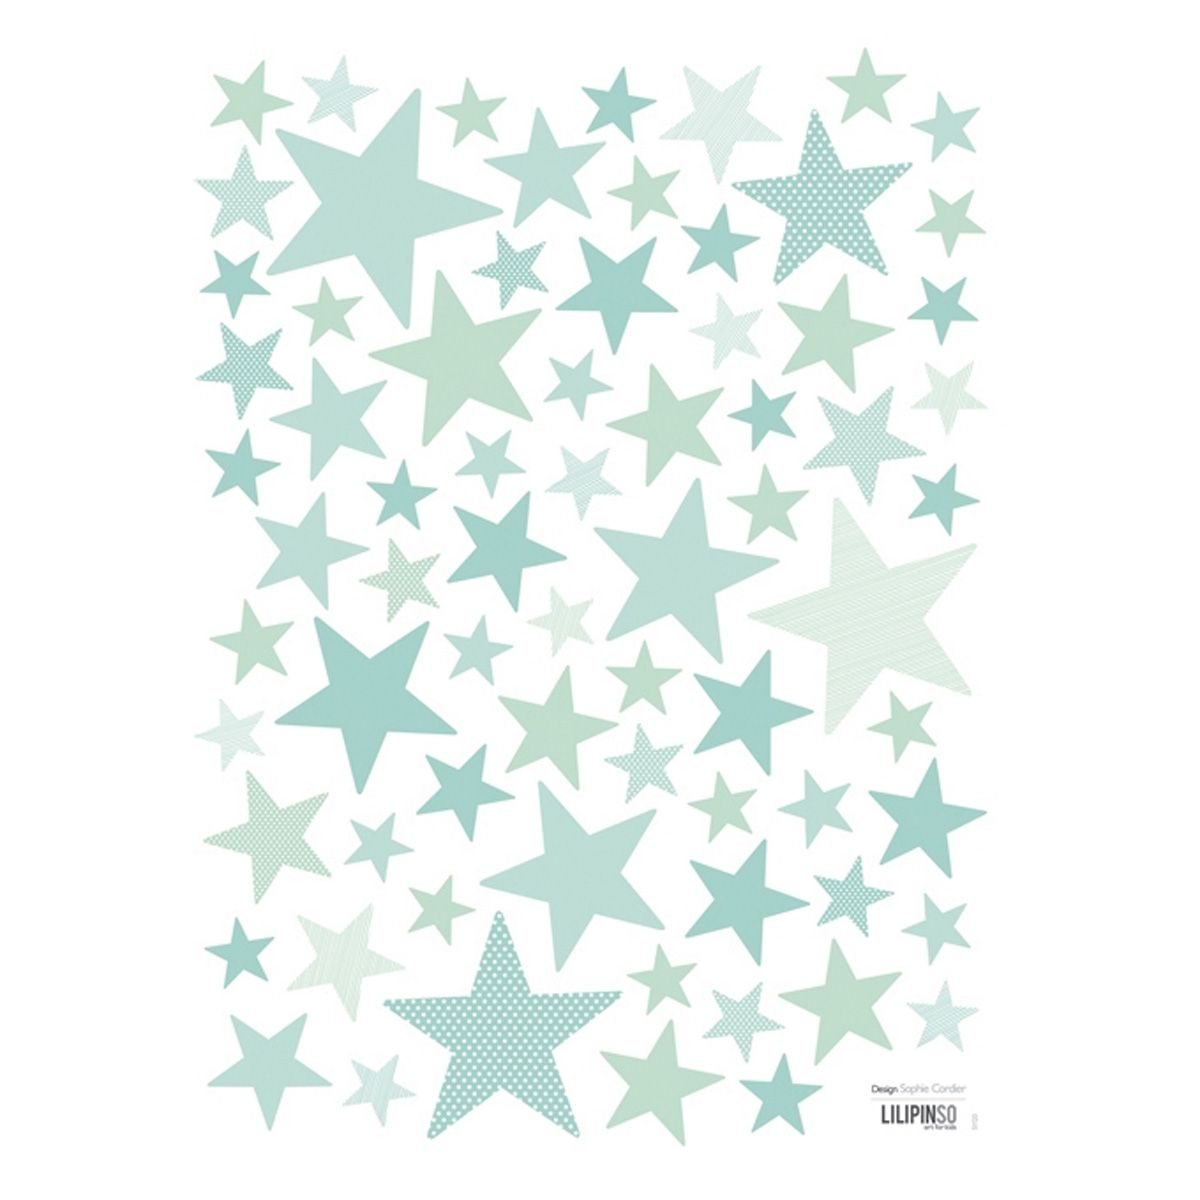 Wandsticker 'My Superstar' Sterne mint